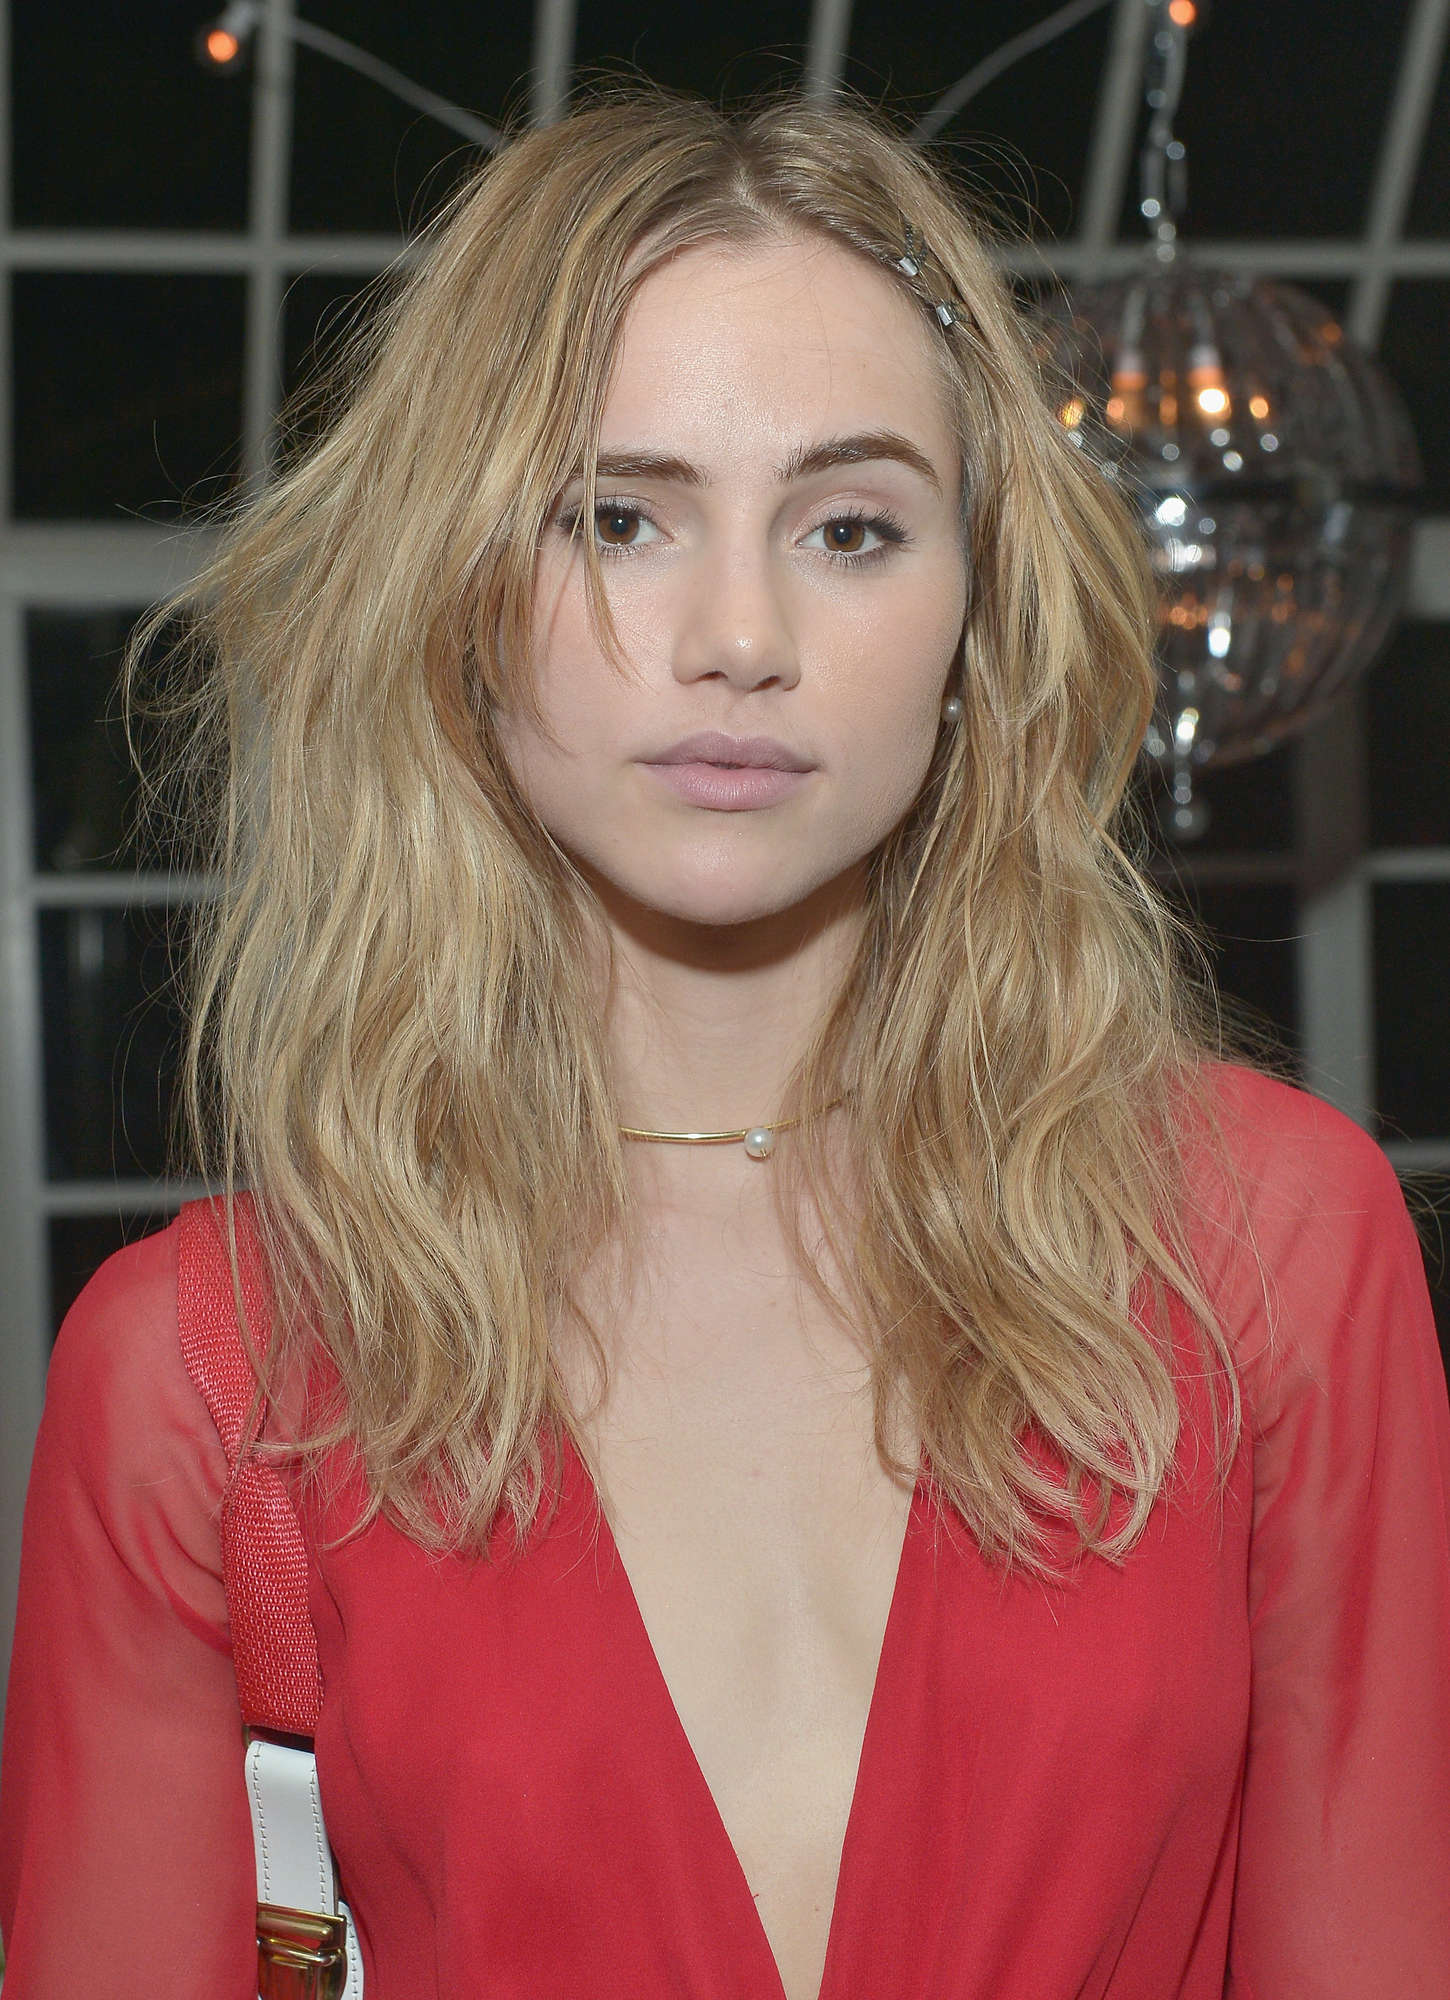 Suki Waterhouse - VANITY FAIR and Barneys New York Dinner Benefit in LA